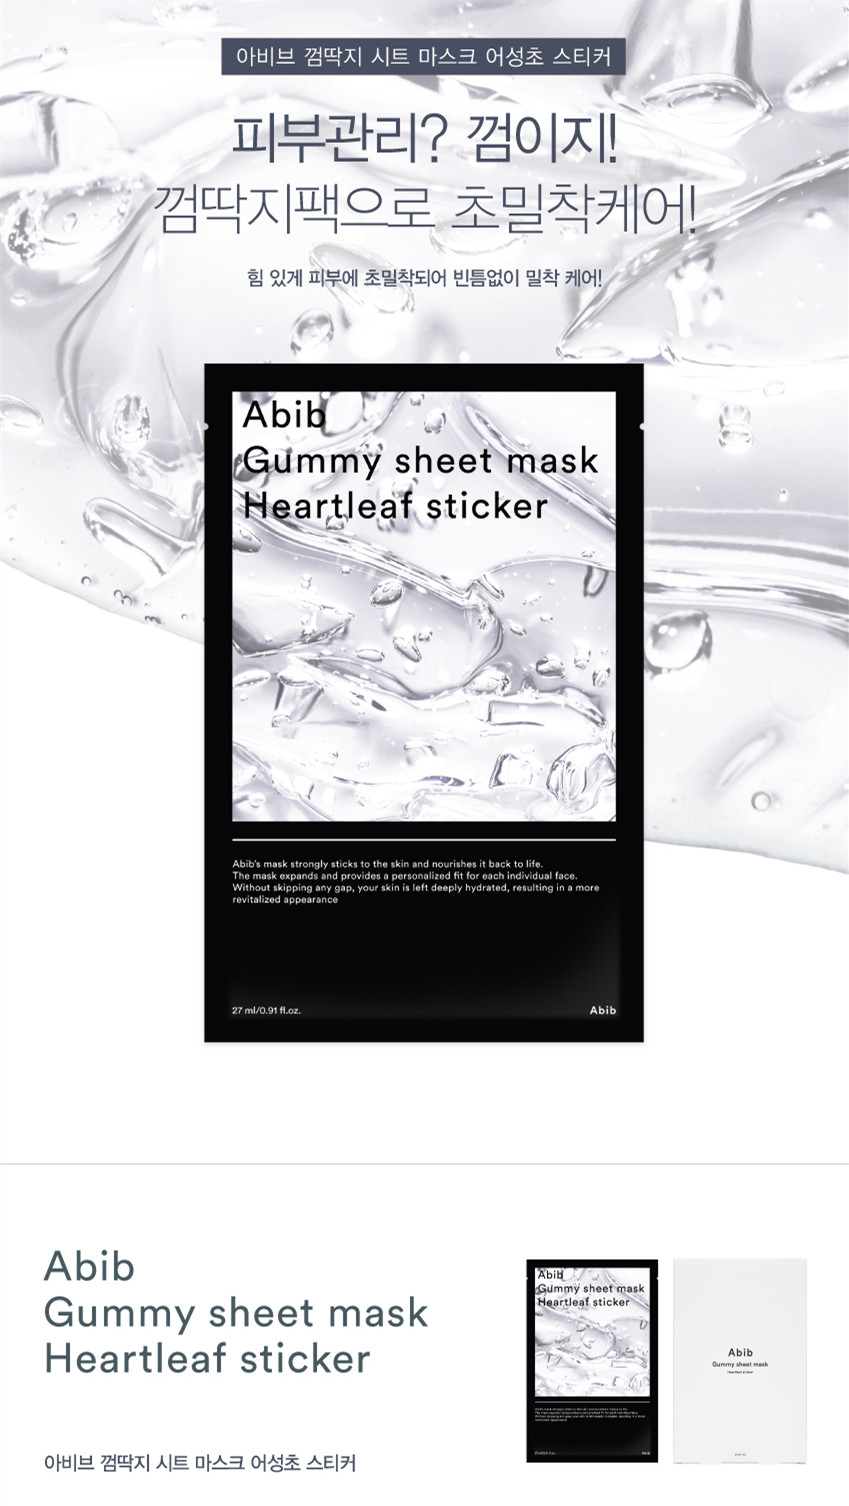 Abib Gummy Sheet mask : Heartleaf Sticker 魚腥草糖黐豆面膜 ♥ 1盒10塊